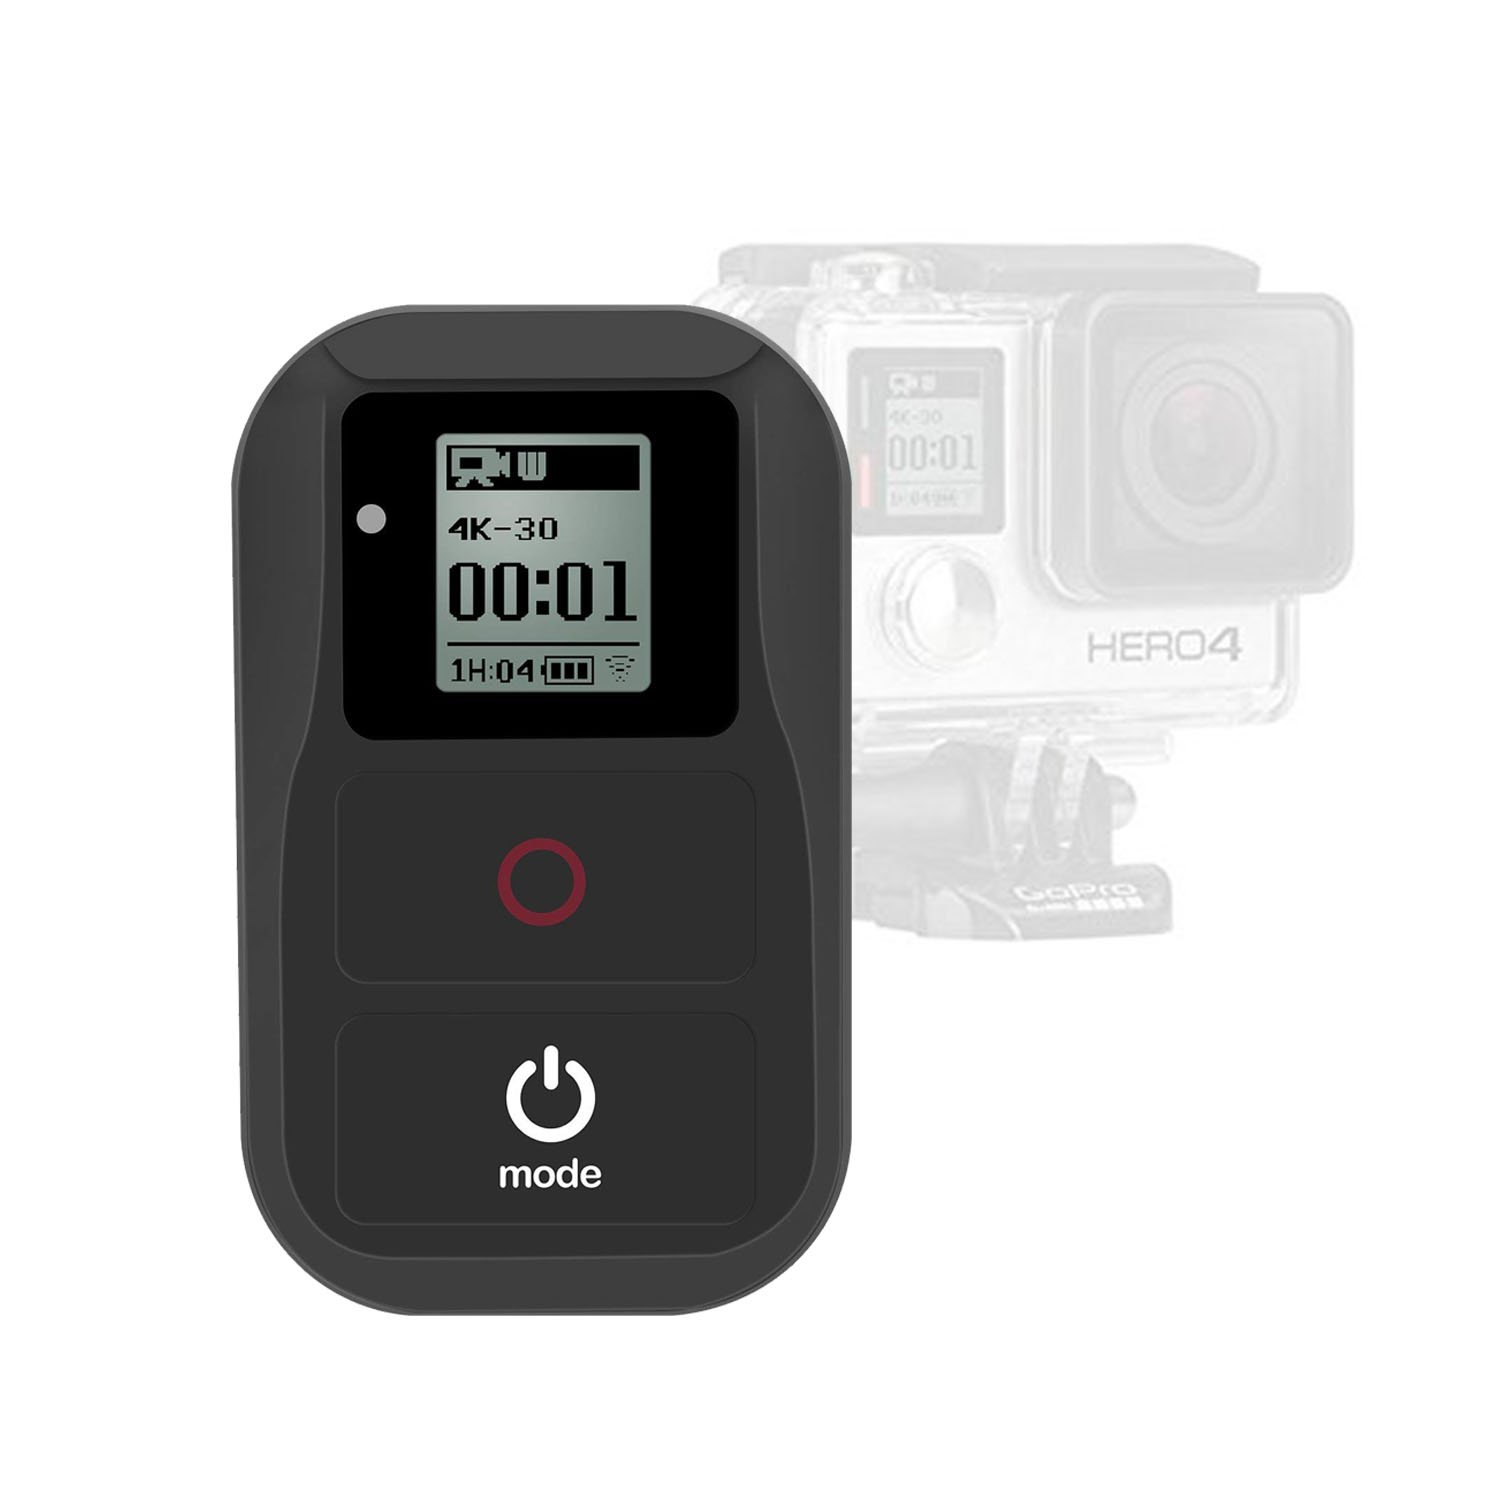 (2018 NEW V2.0) for Gopro WIFI Remote Control,Waterproof Smart remote for gopro hero 5 black Hero 6 4 Session 5 Session/Fusion Cameras